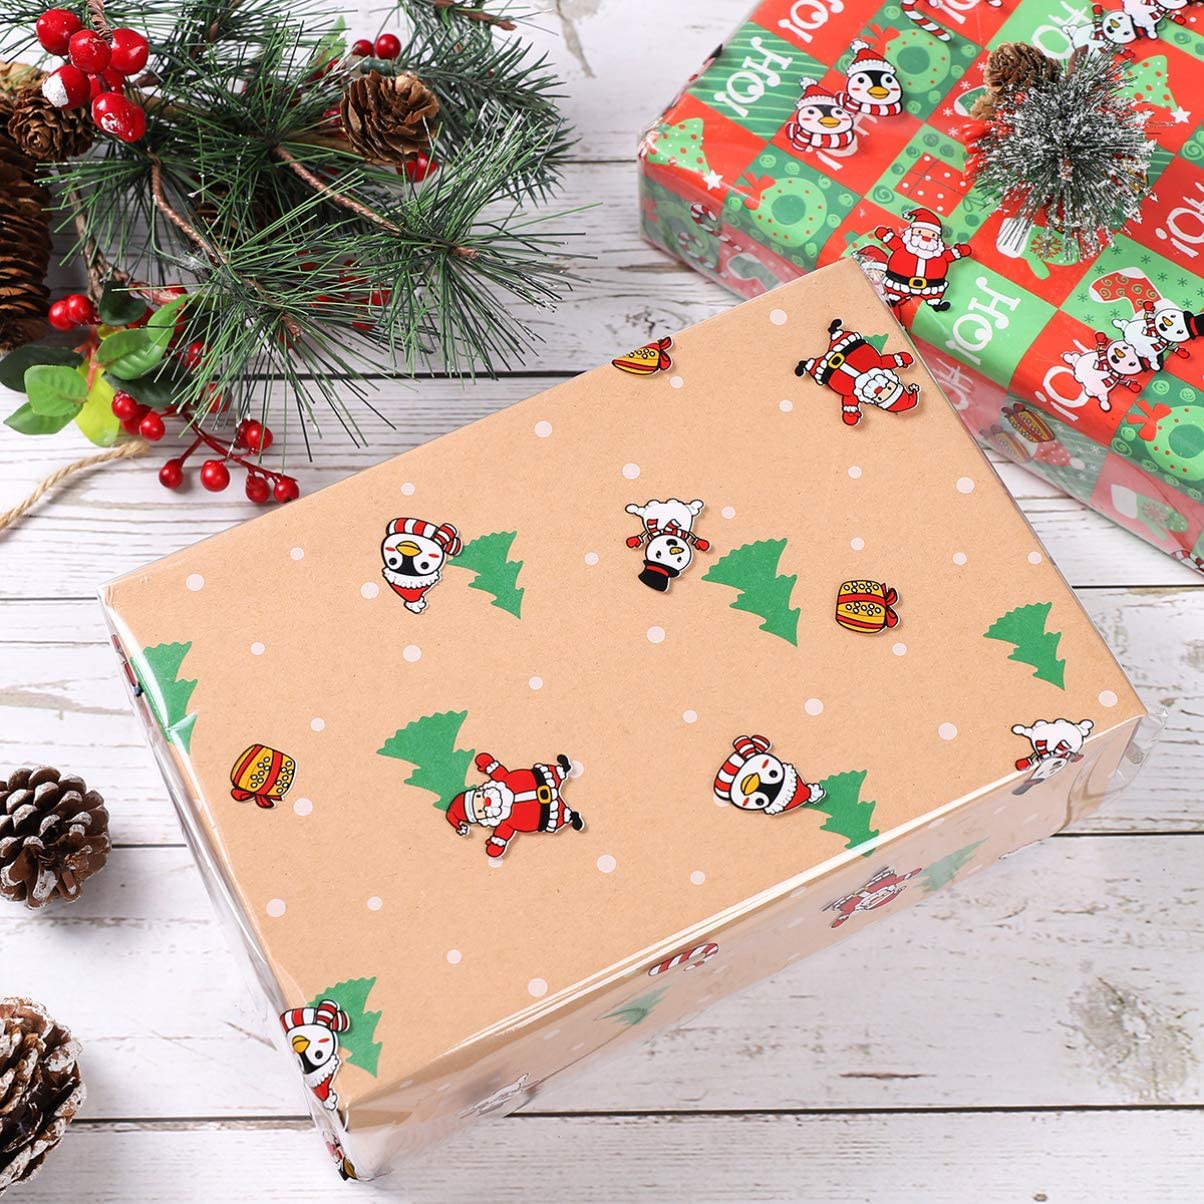 Color Santa Snowman Wrap Paper 2.5 Mil 3000x40cm NUOBESTY Christmas Cellophane Wrap Roll for Xmas Gift Wrapping Flowers Basket Packing Party Decorations